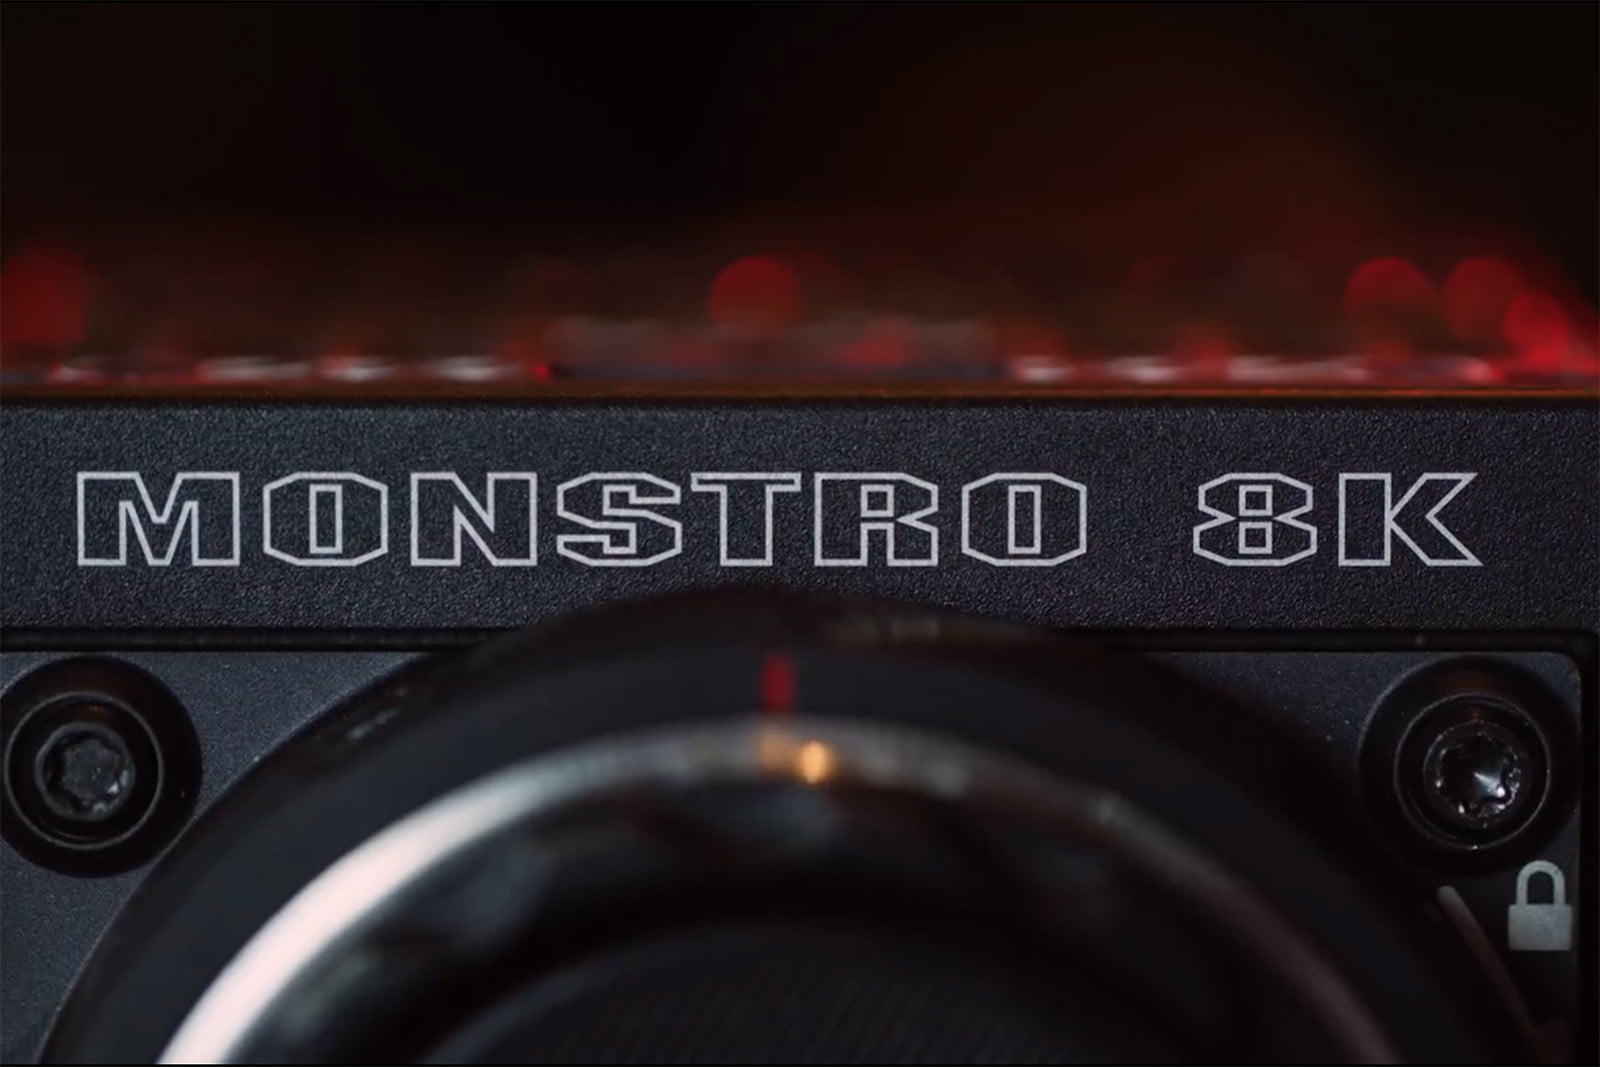 The Red Monstro 8k Vv Is A Beast With 8k 60 Fps Performance